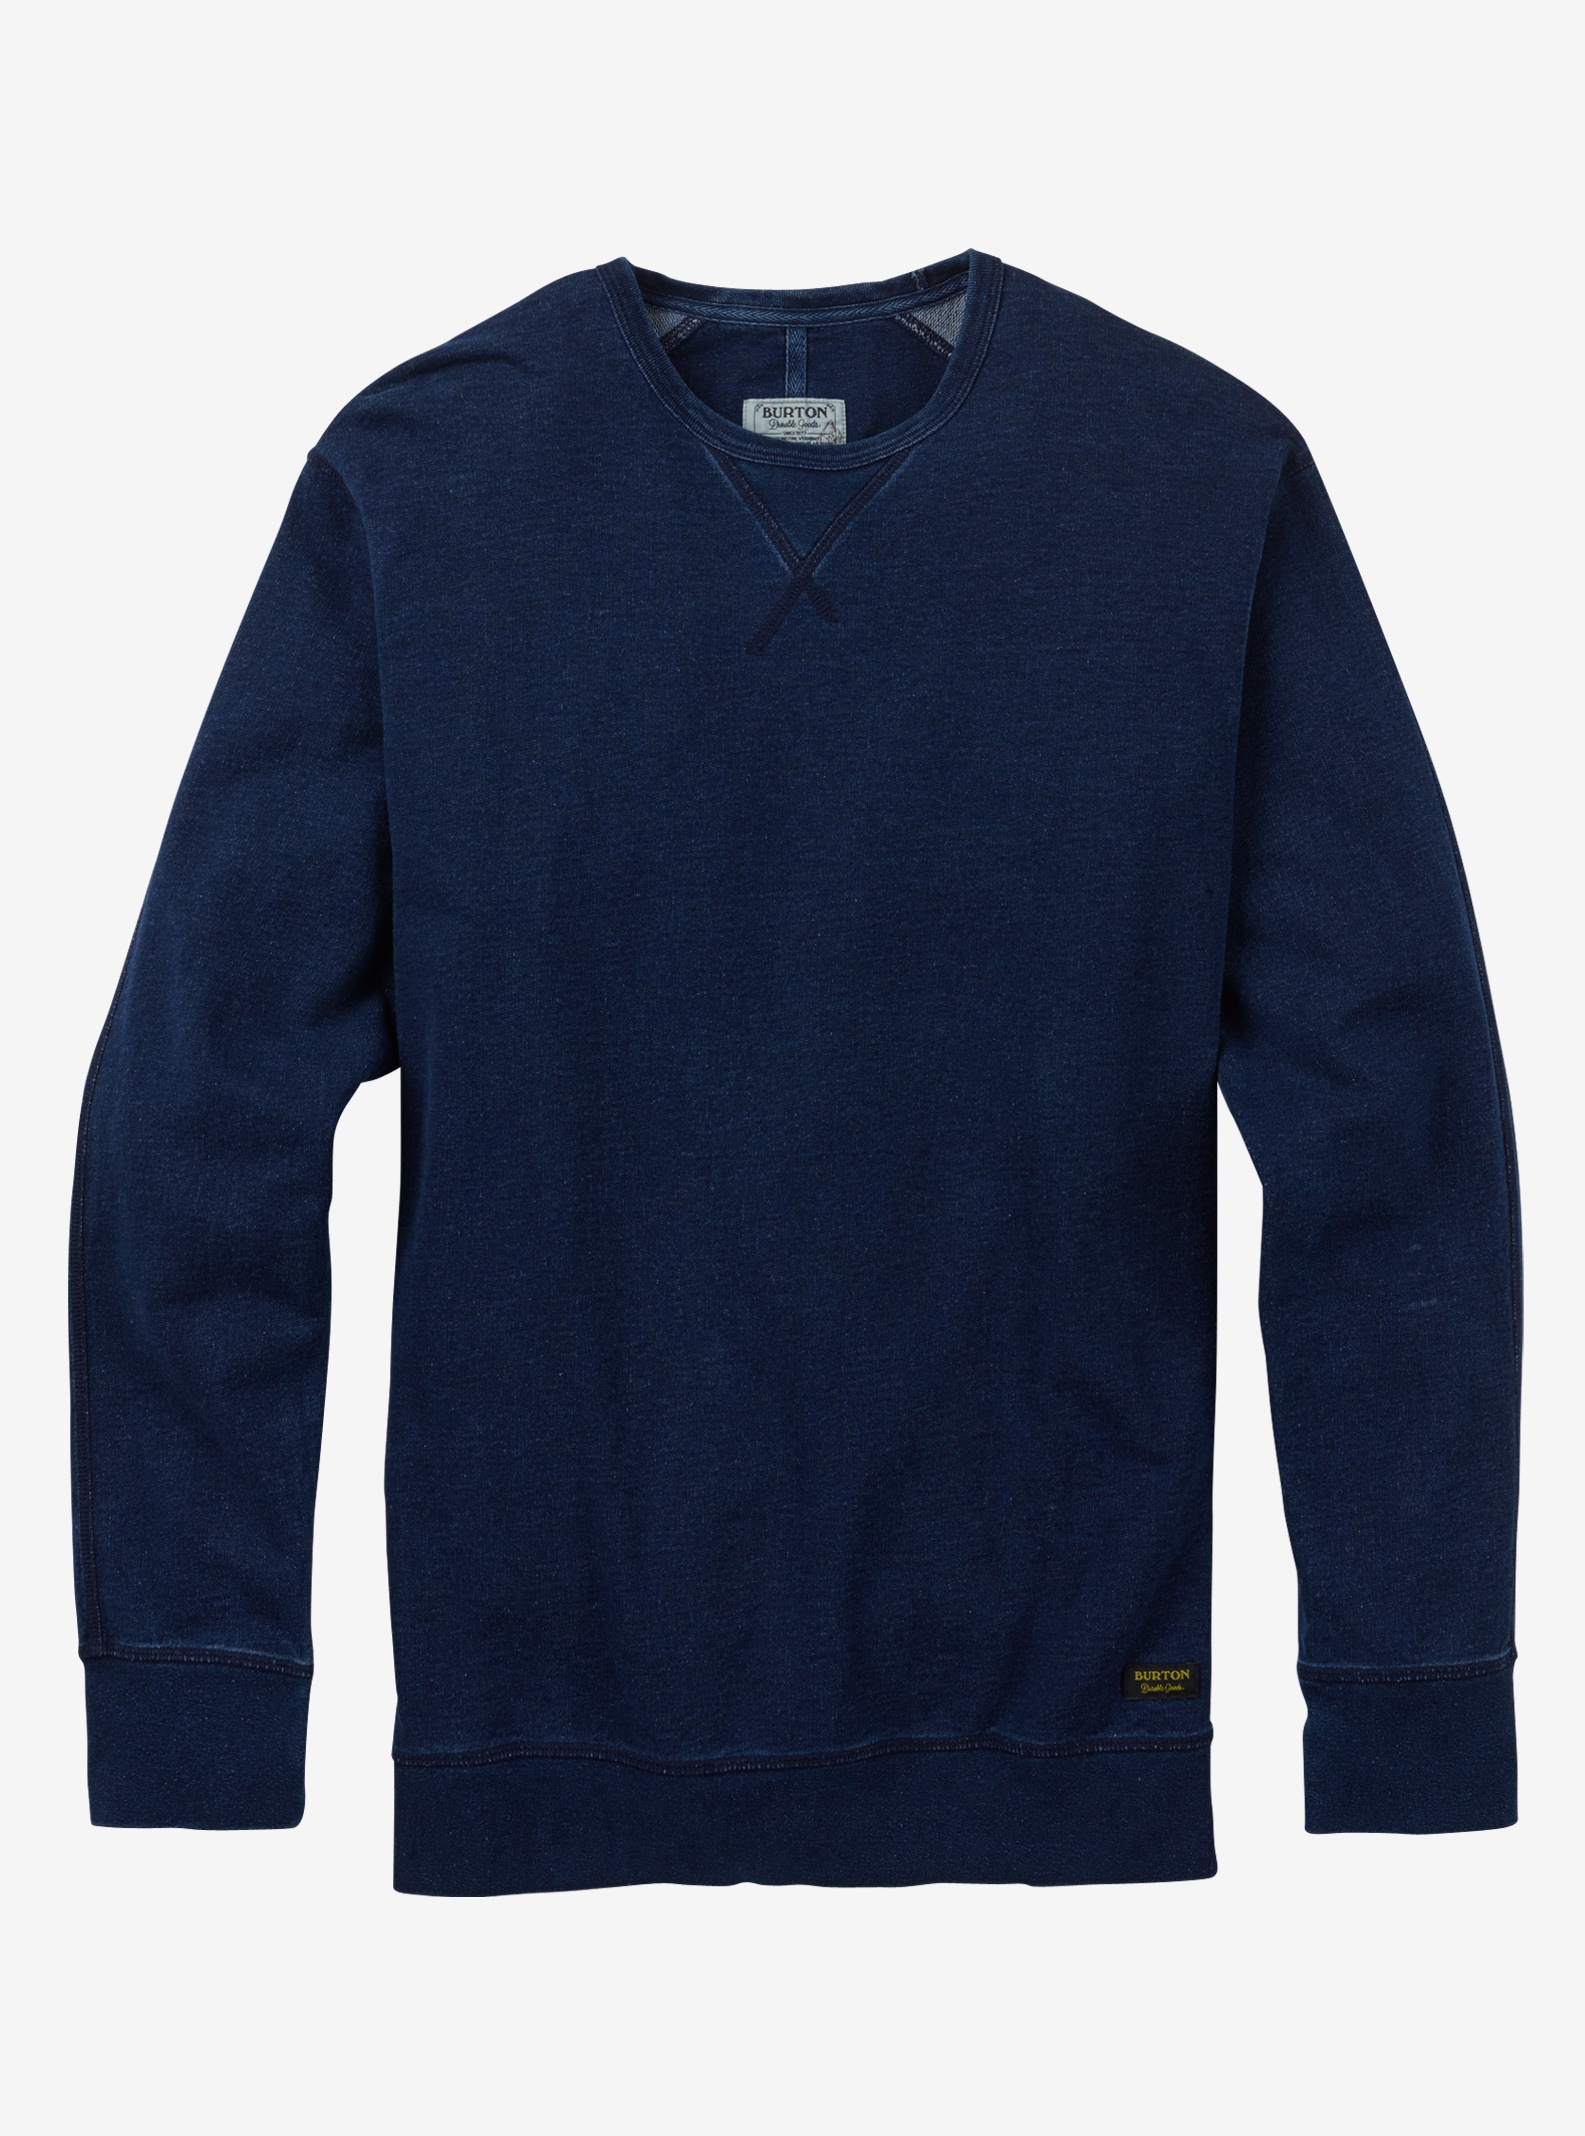 Burton Monhegan Fleece Crew shown in Indigo